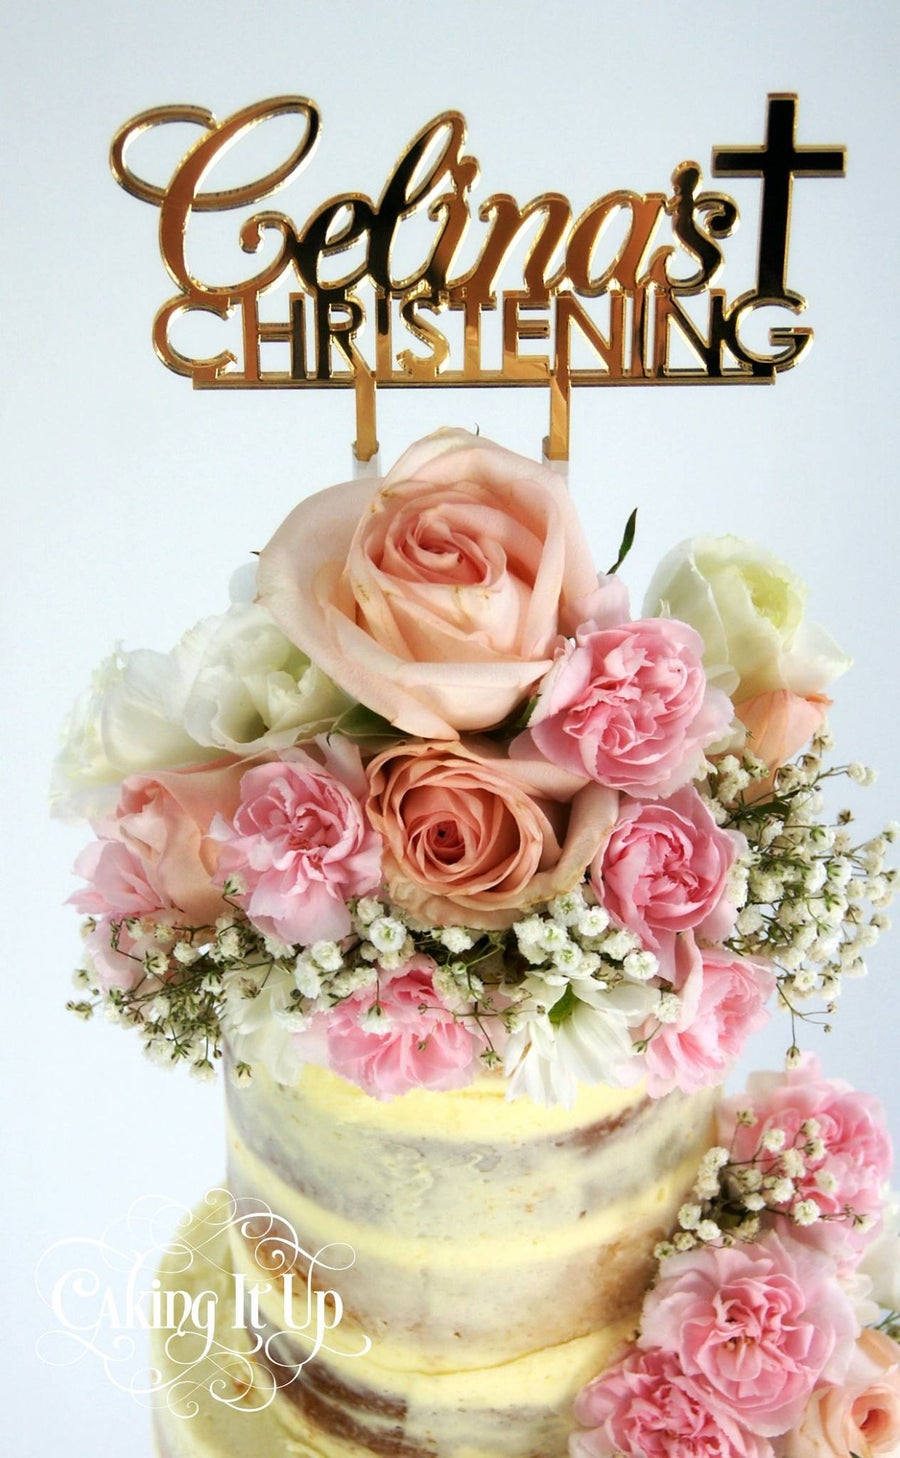 Image of Celina's Christening